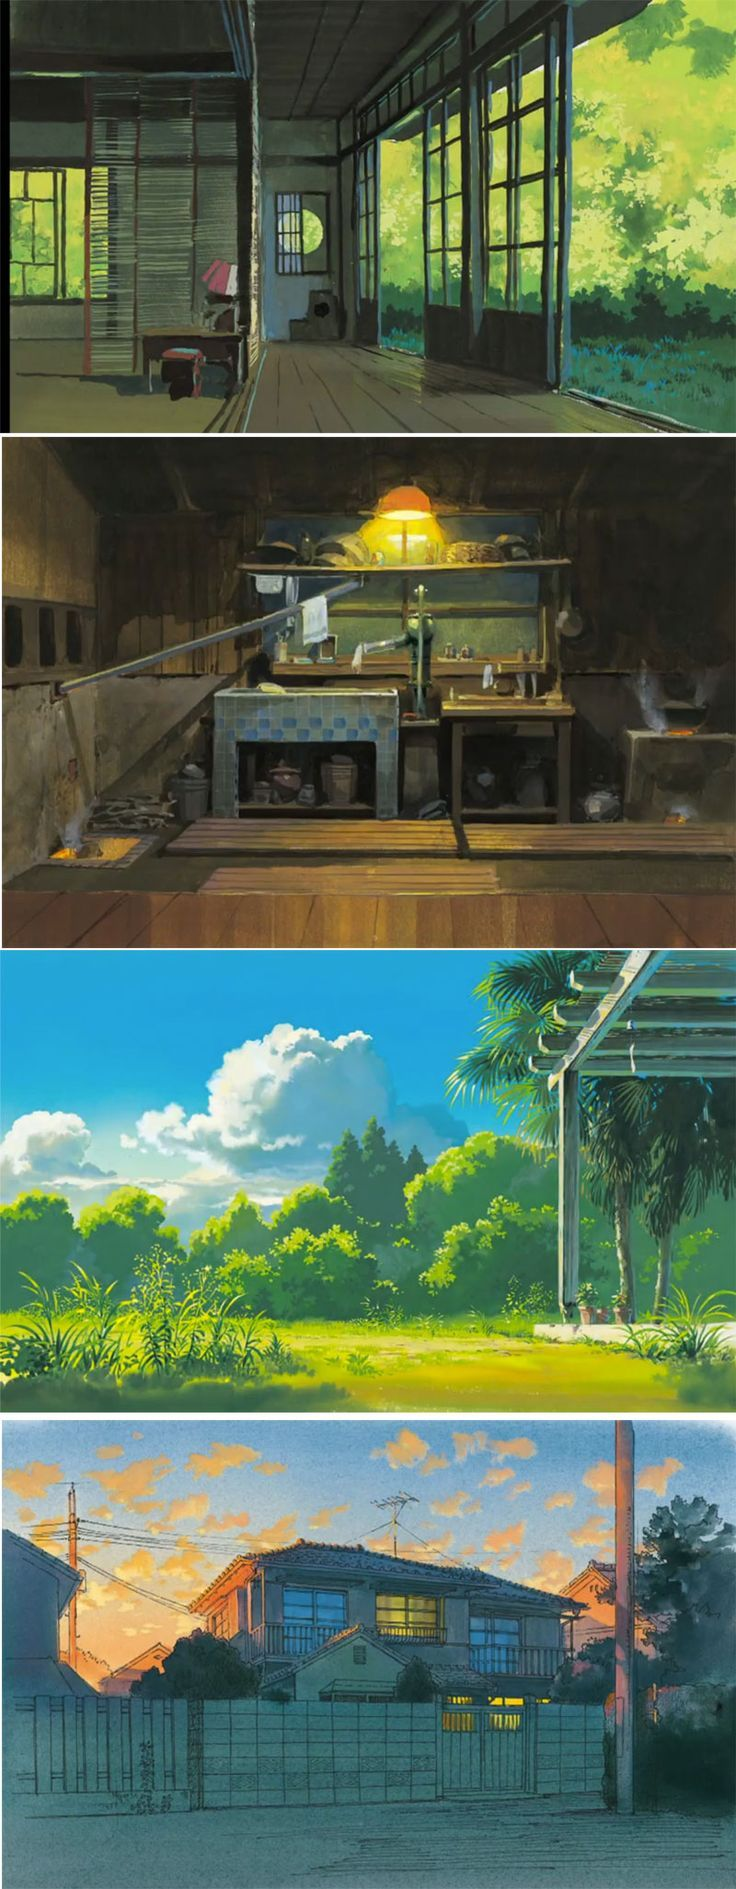 "Kazuo Oga concept art ""If you get the chance-visit Studio Ghibli. These things are often pinned onto the studio walls! Astounding."" KB"